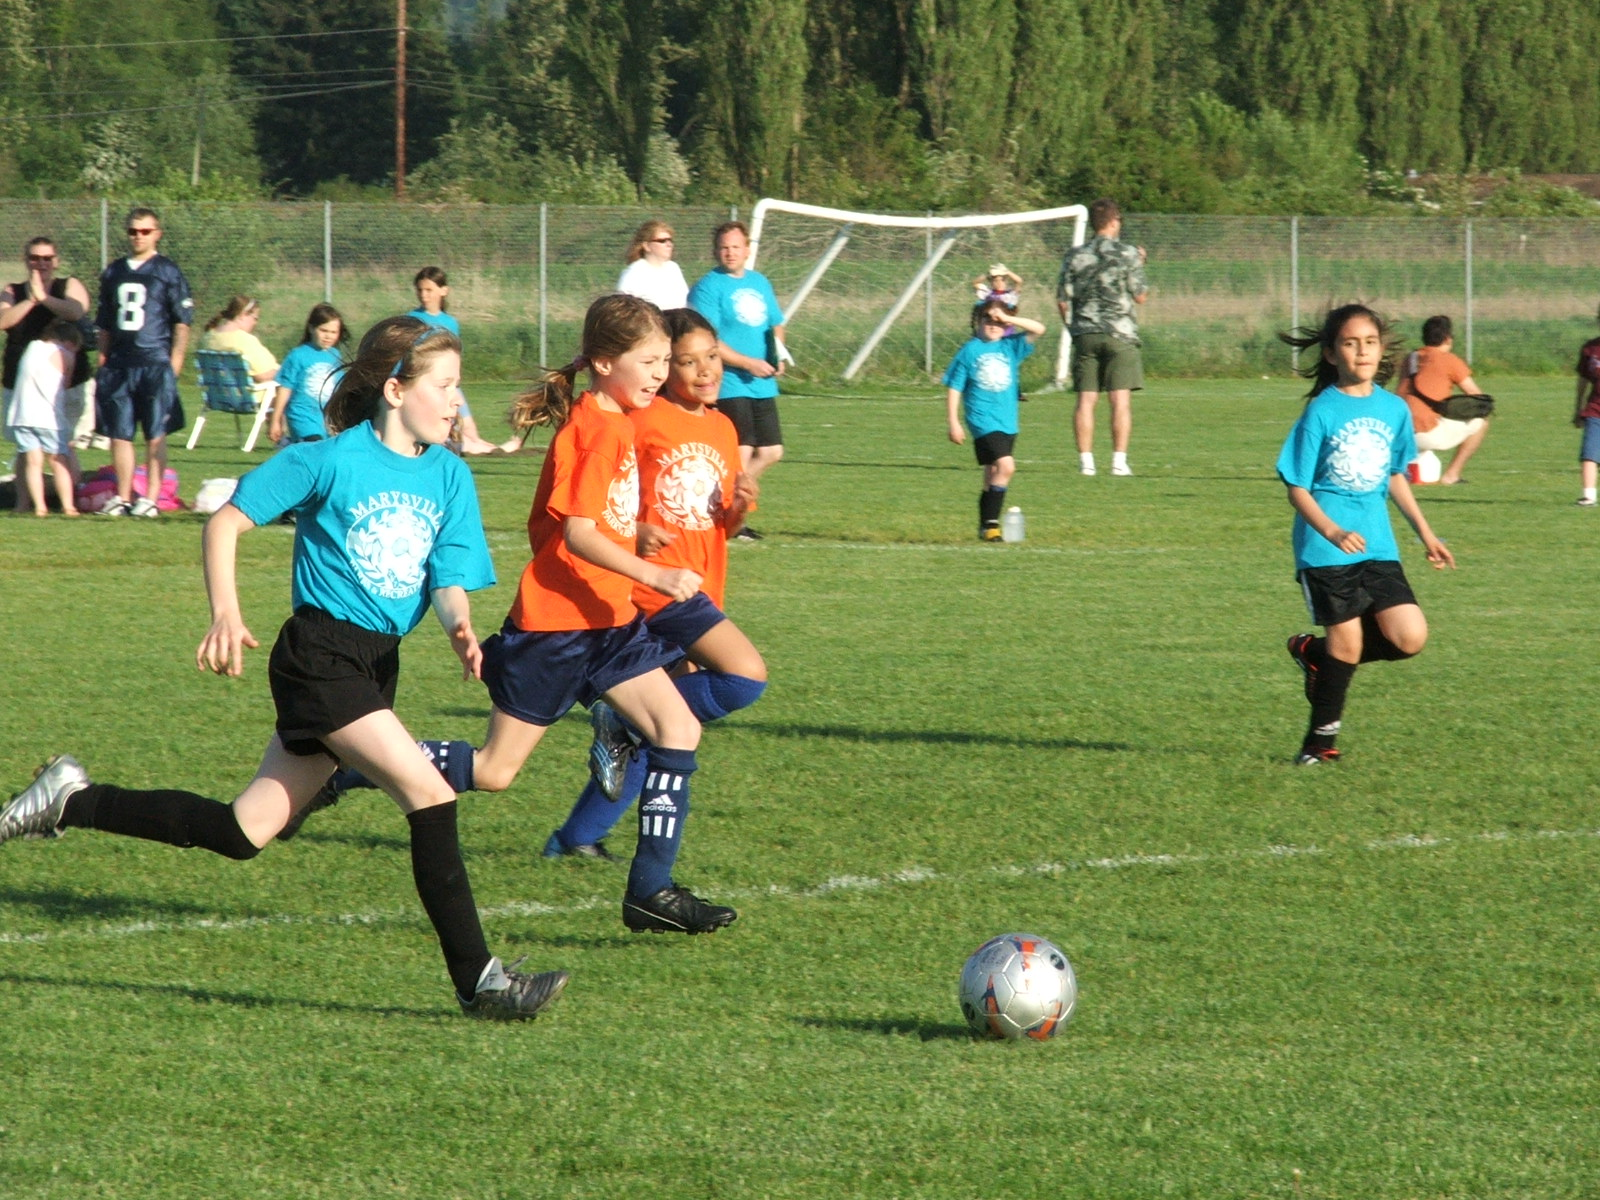 Youth Soccer | Marysville, WA - Official Website